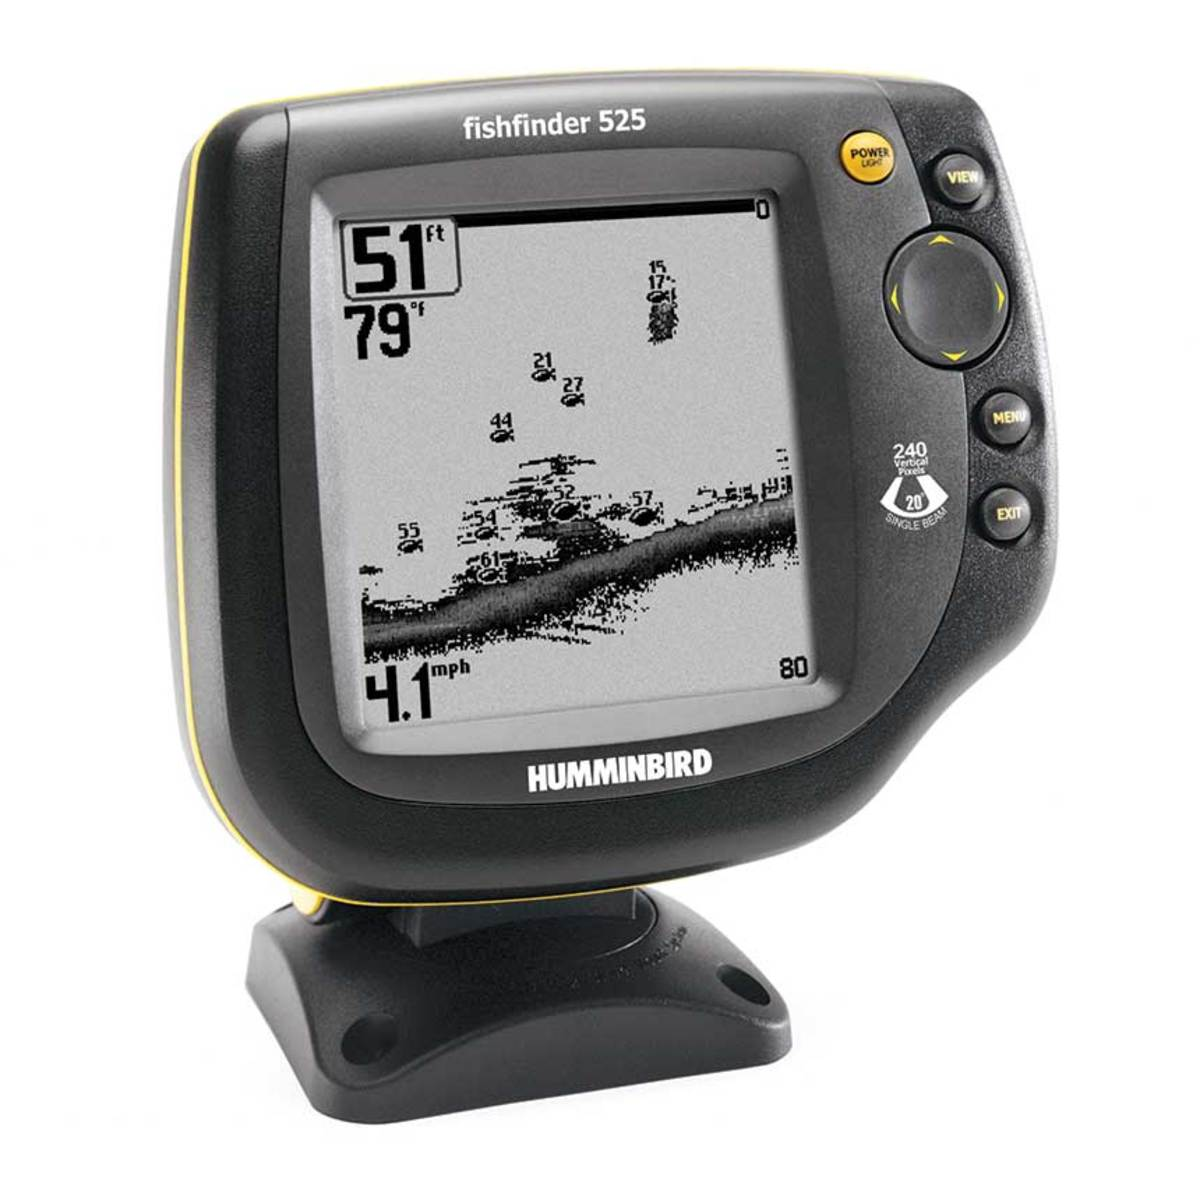 Electronics have advanced from Humminbird's Fishfinder 525, introduced in the 1980s, and the FR1211 radar from Furuno. The Furuno's CRT tube forced the boater to look down into it.